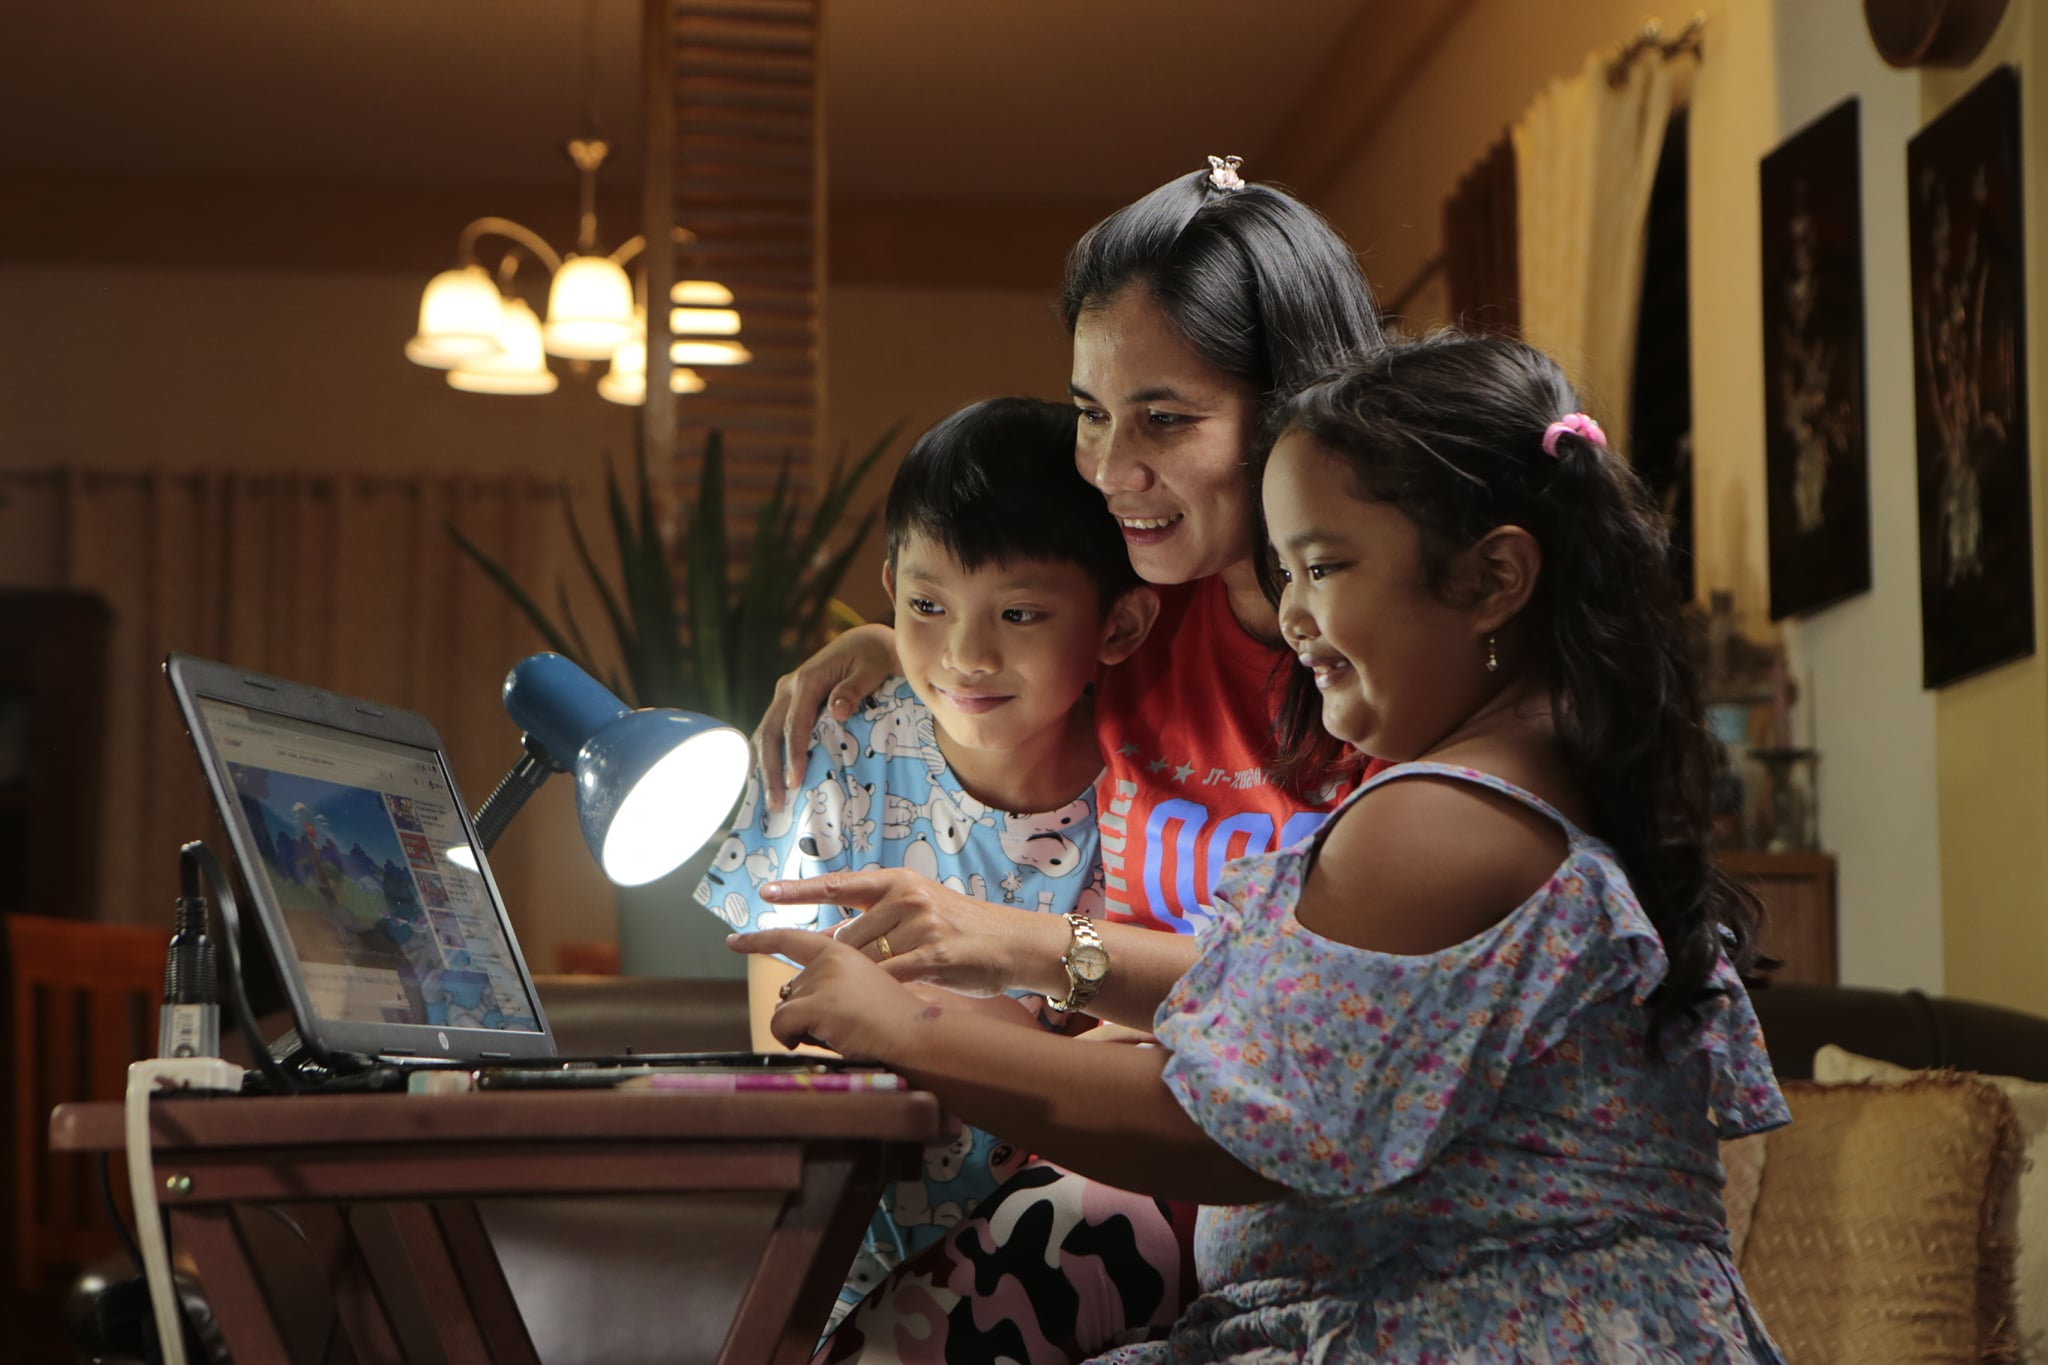 The Light of the Family as an Educator